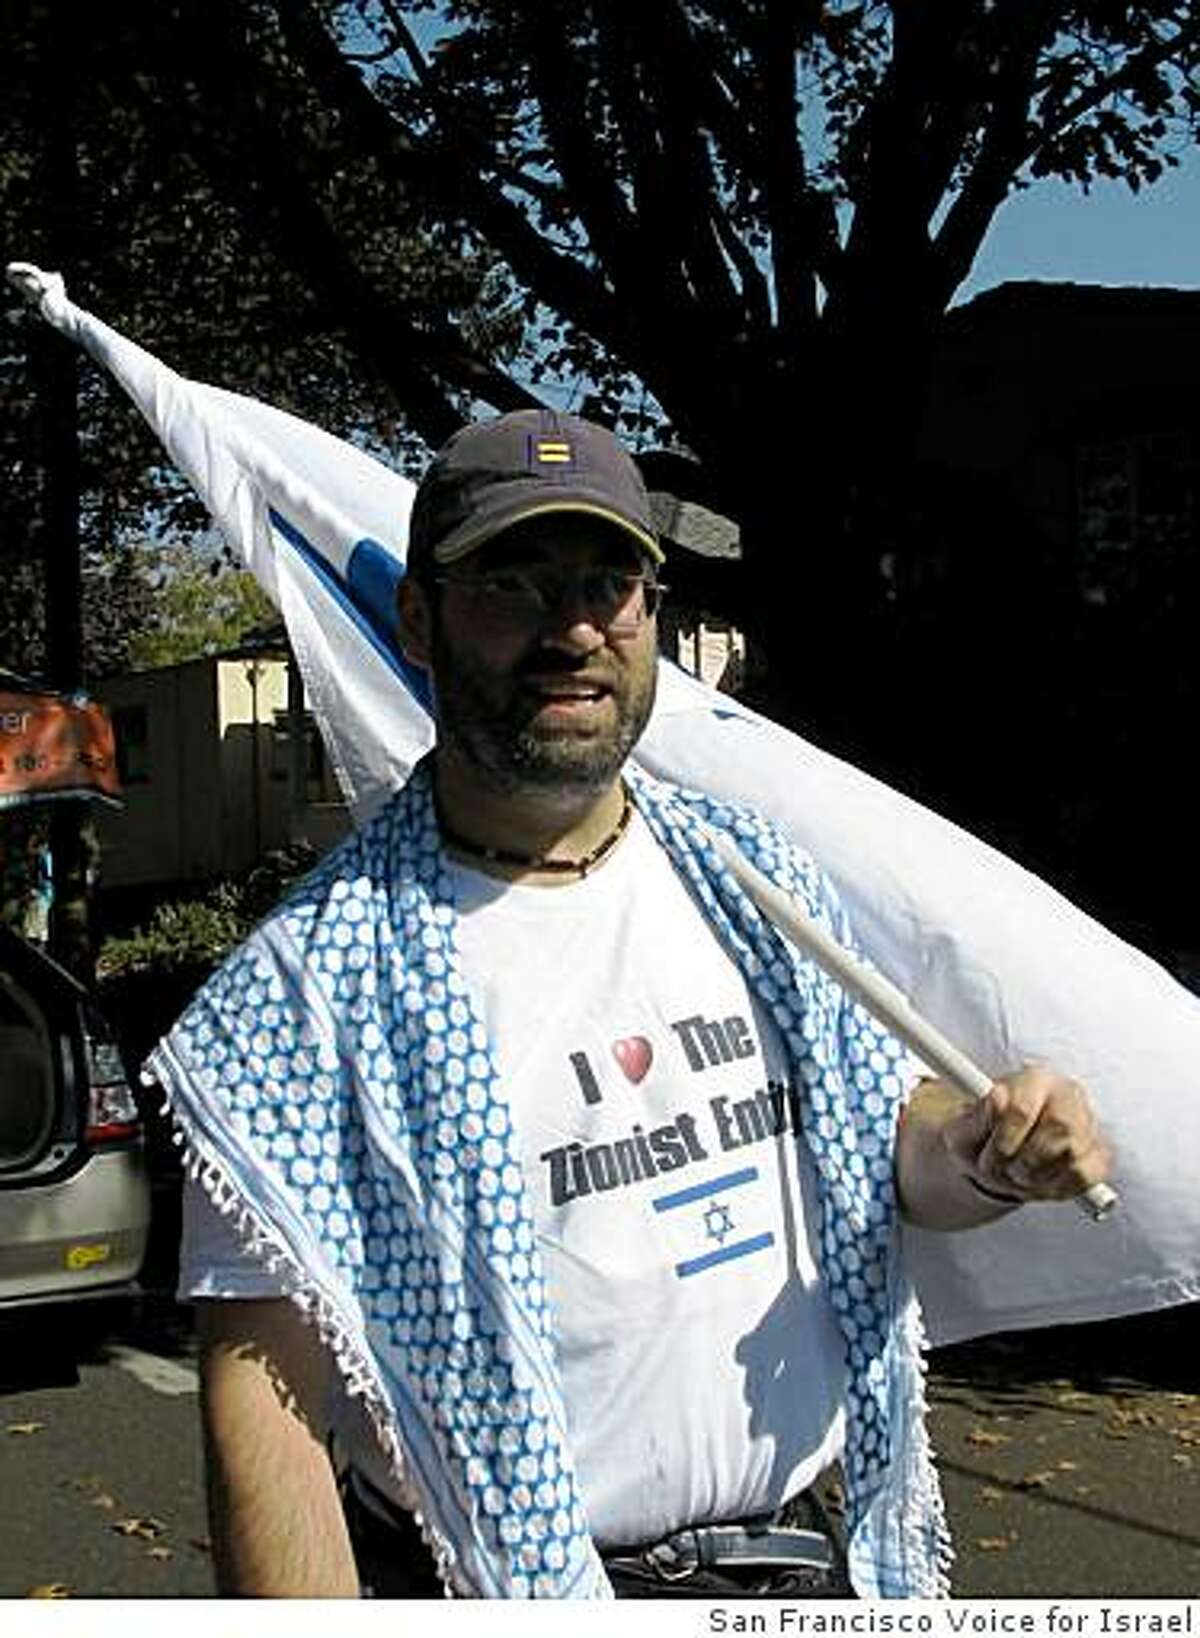 Daniel Kliman, a 38-year-old doctor from Oakland and a pro-Israel activist was found dead at the bottom of an elevator shaft in the Sharon Building at 55 New Montgomery Street in San Francisco, Calif. Kliman is pictured at the How Berkeley Can You Be parade from September 28, 2008 in Berkeley, Calif.